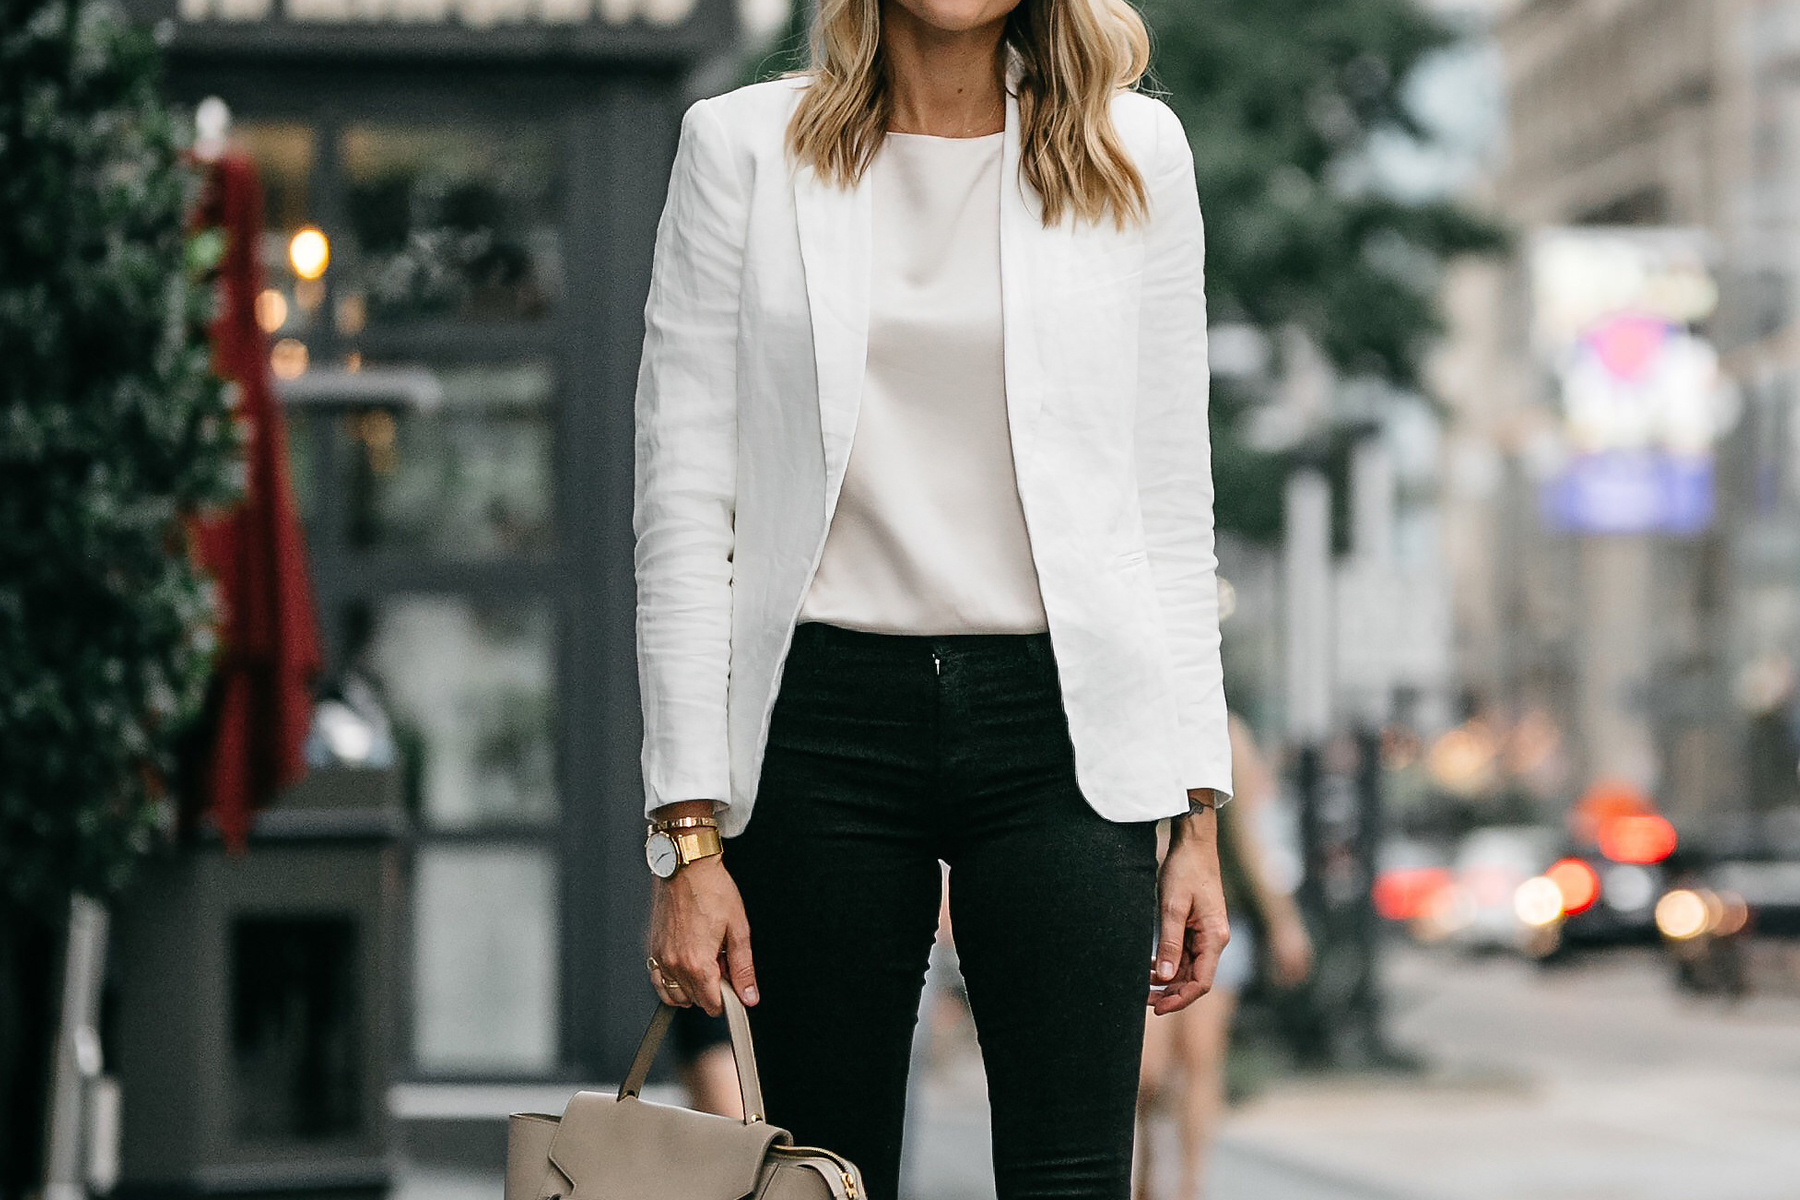 Stitch Fix Outfit Joie White Blazer J Brand Black Skinny Jeans Fashion Jackson Dallas Blogger Fashion Blogger Street Style